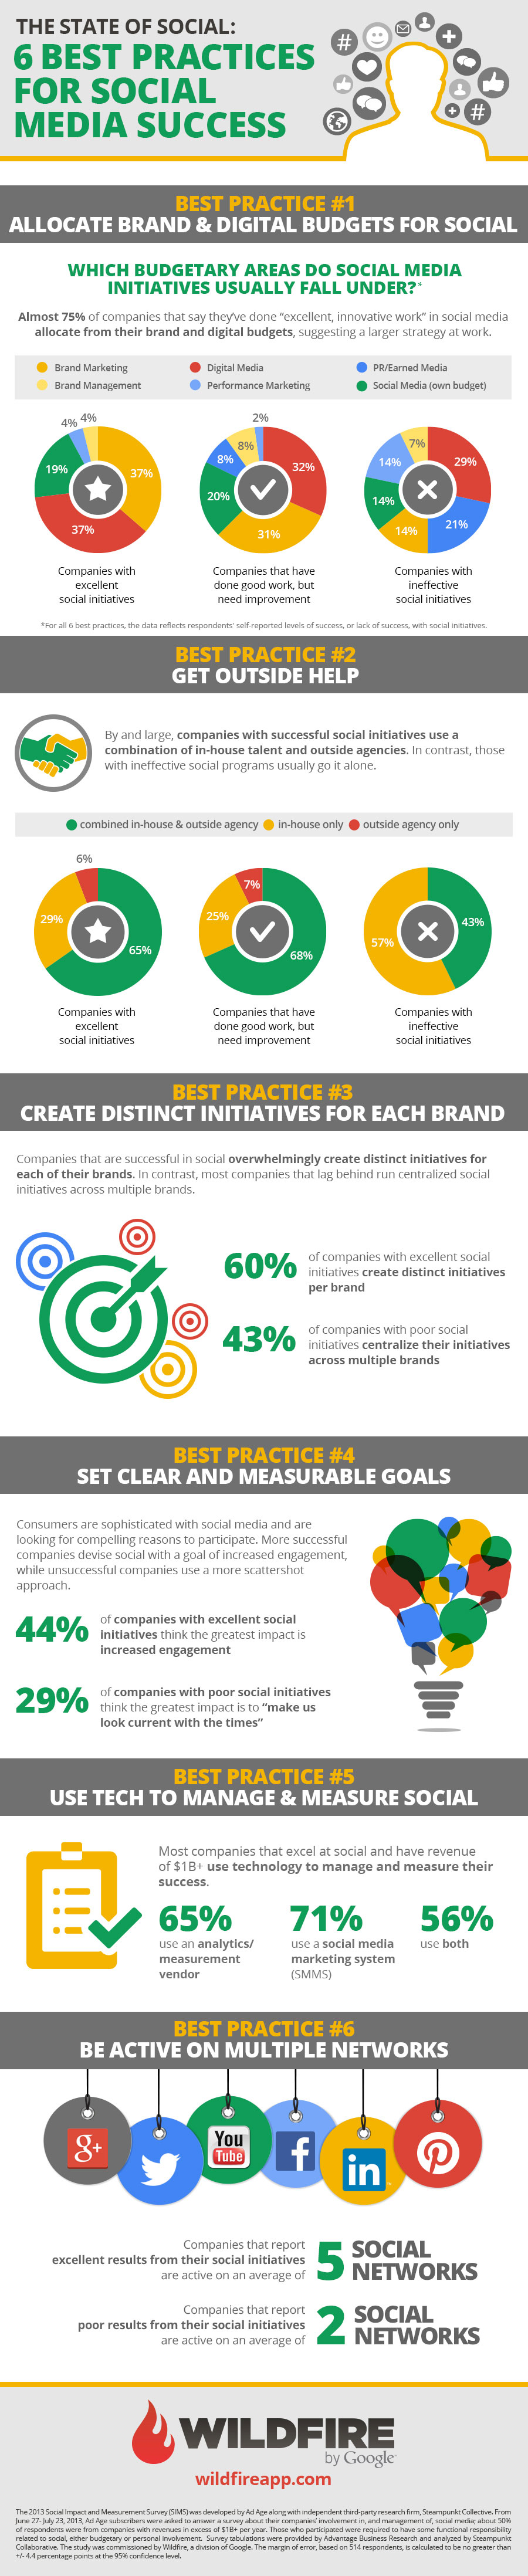 6 Best Practices for Social Media Success